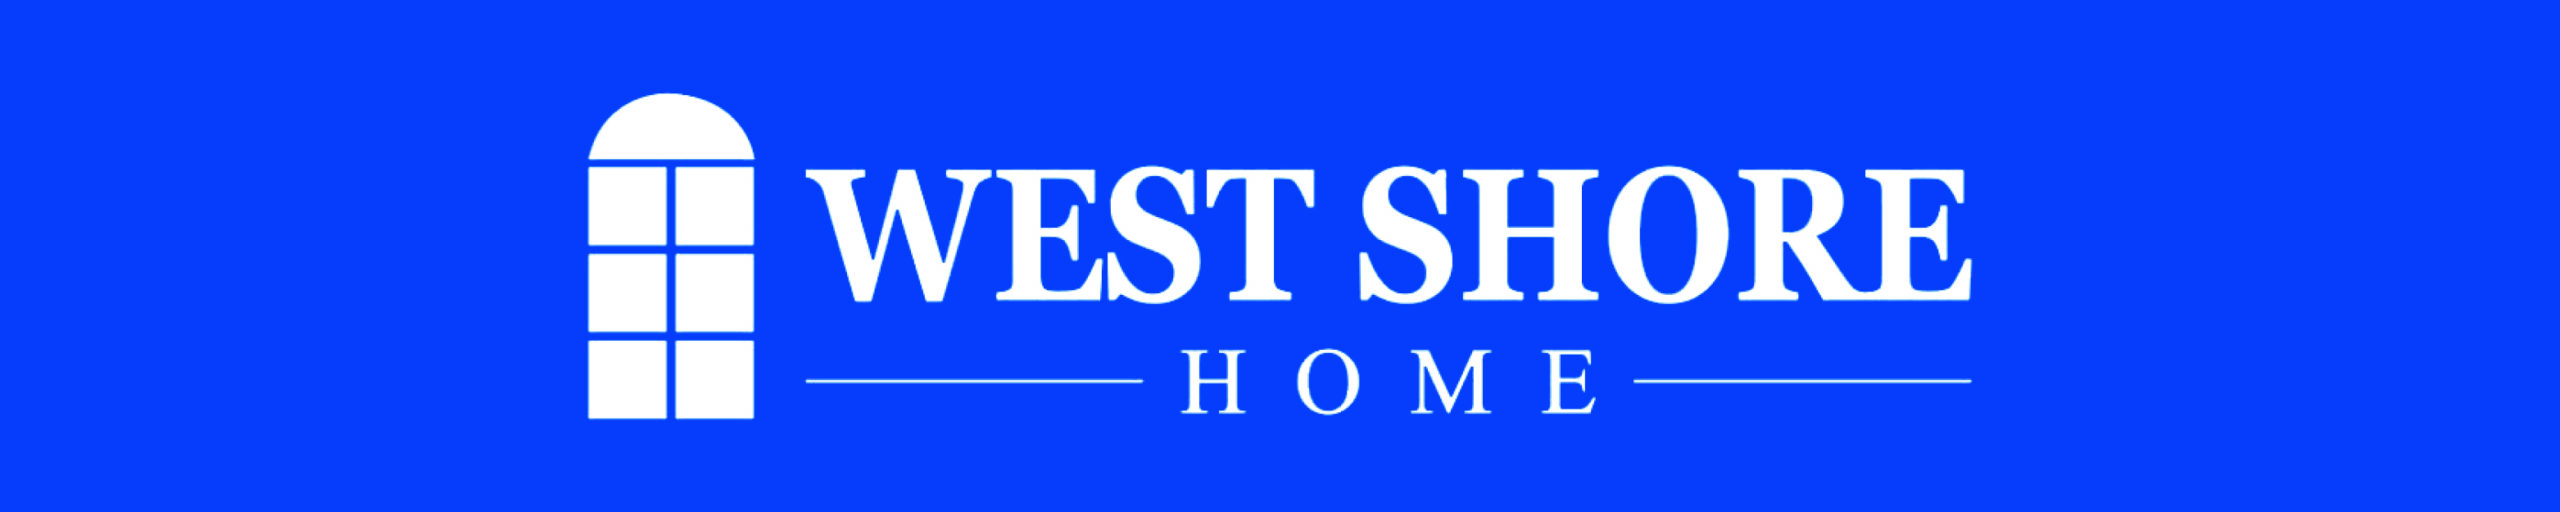 West Shore Home web ad (Formerly Hullco)